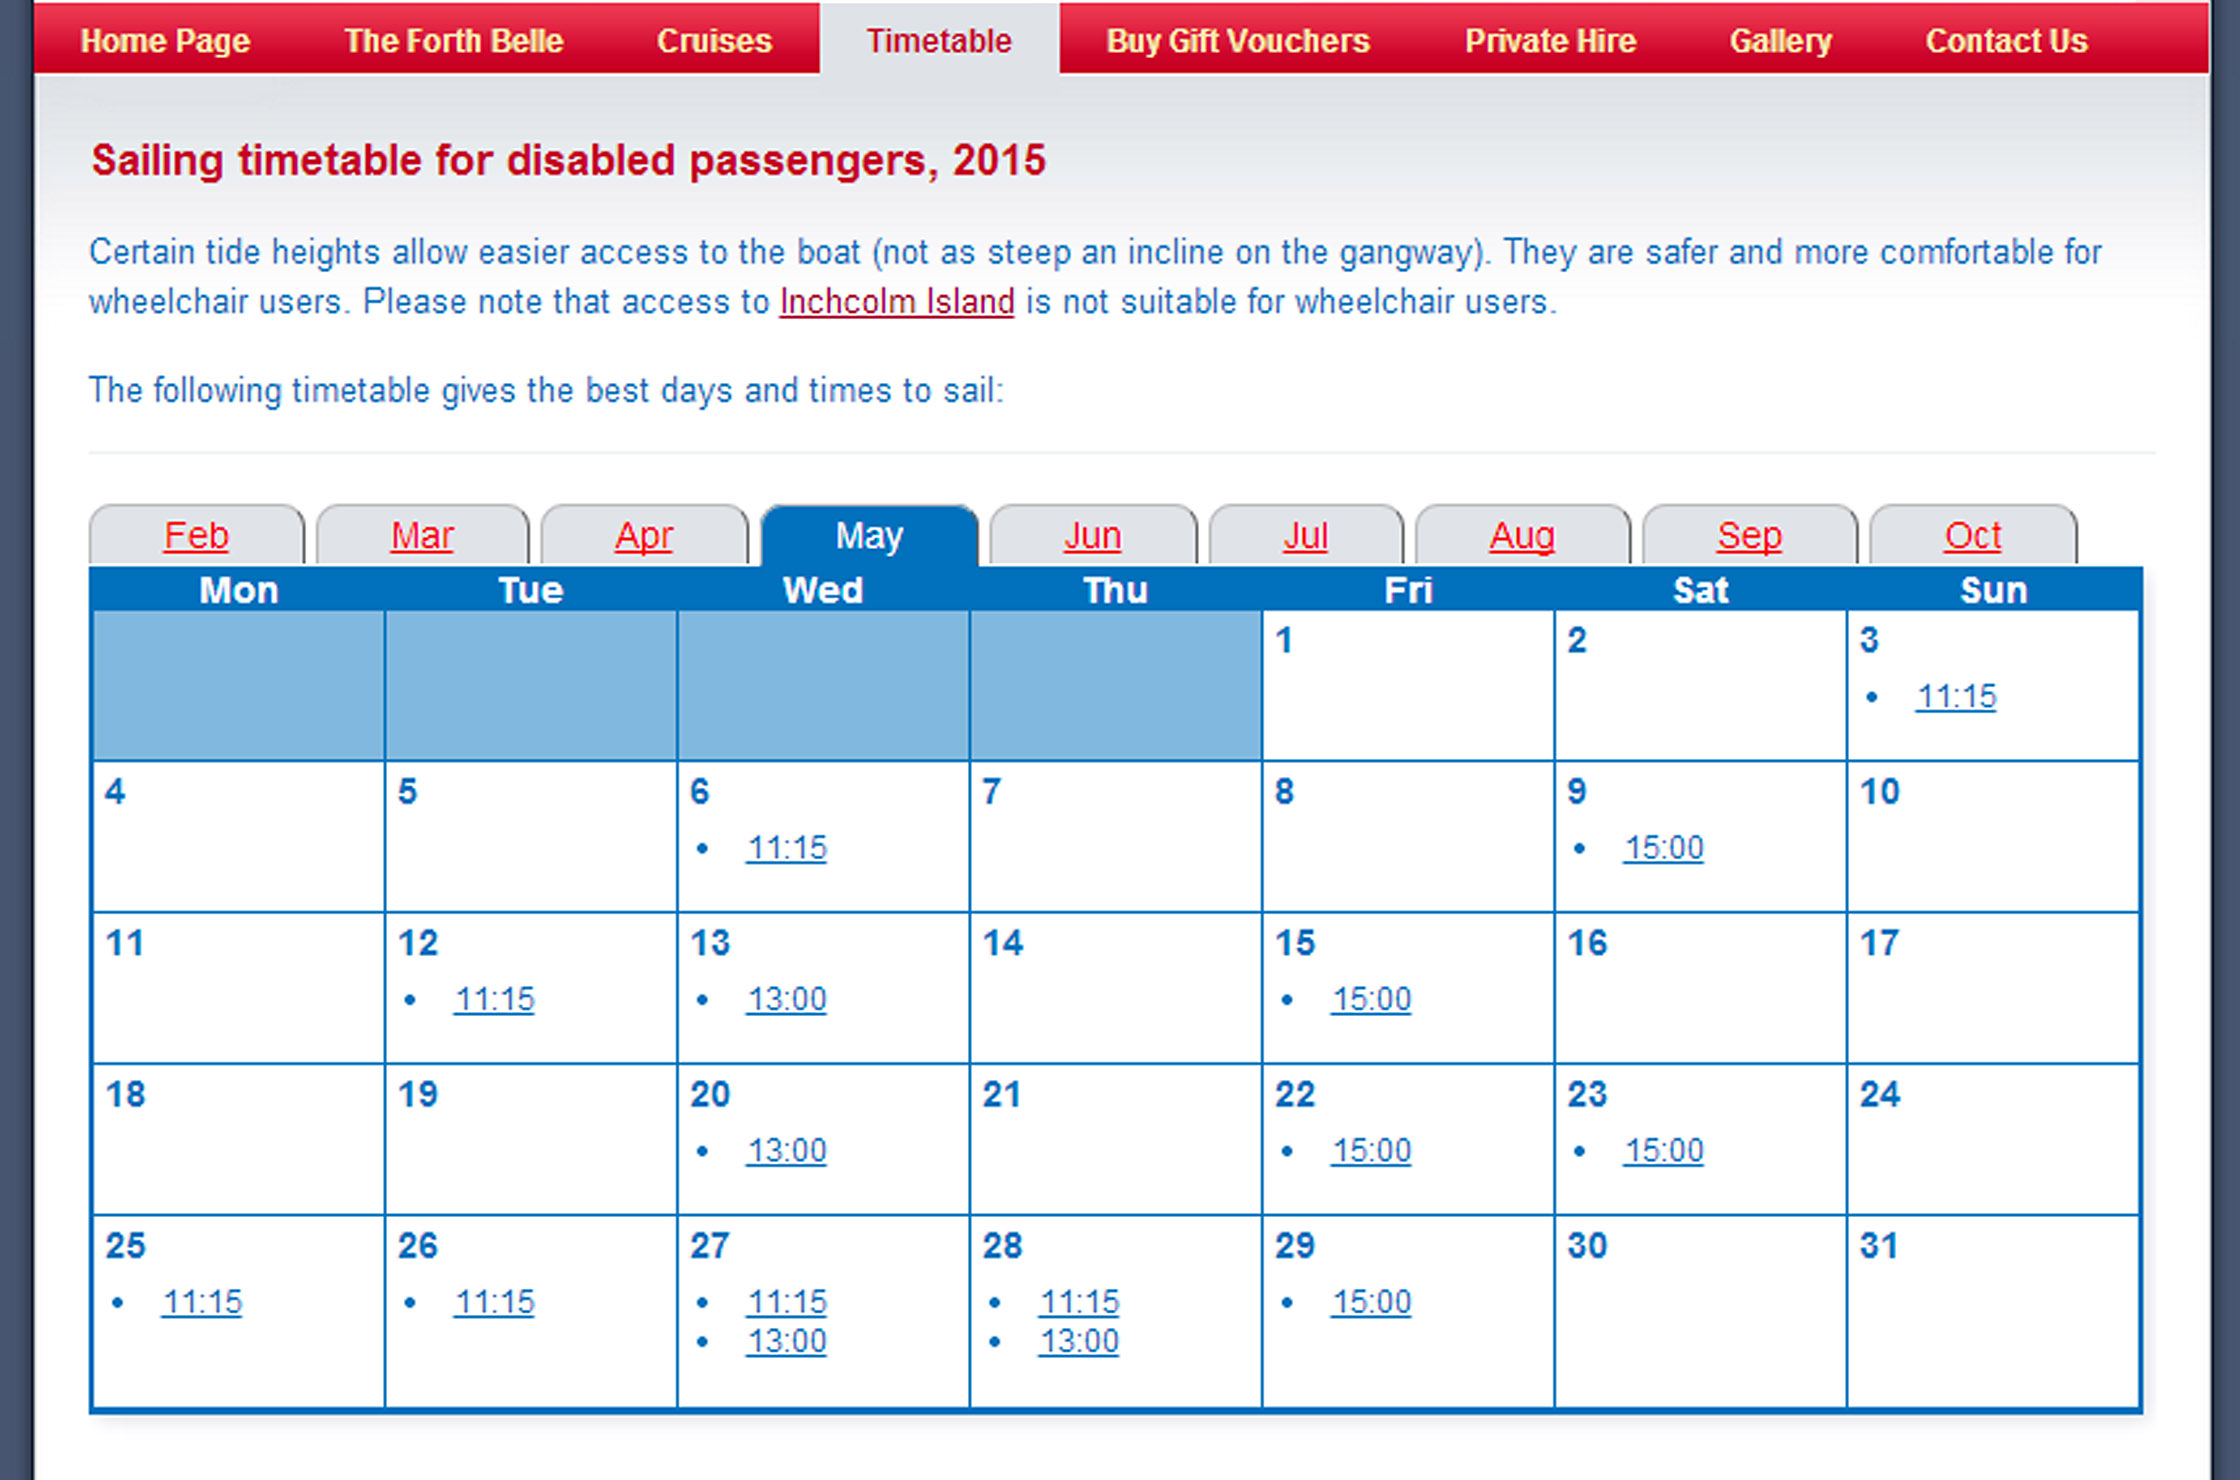 The disabled timetable